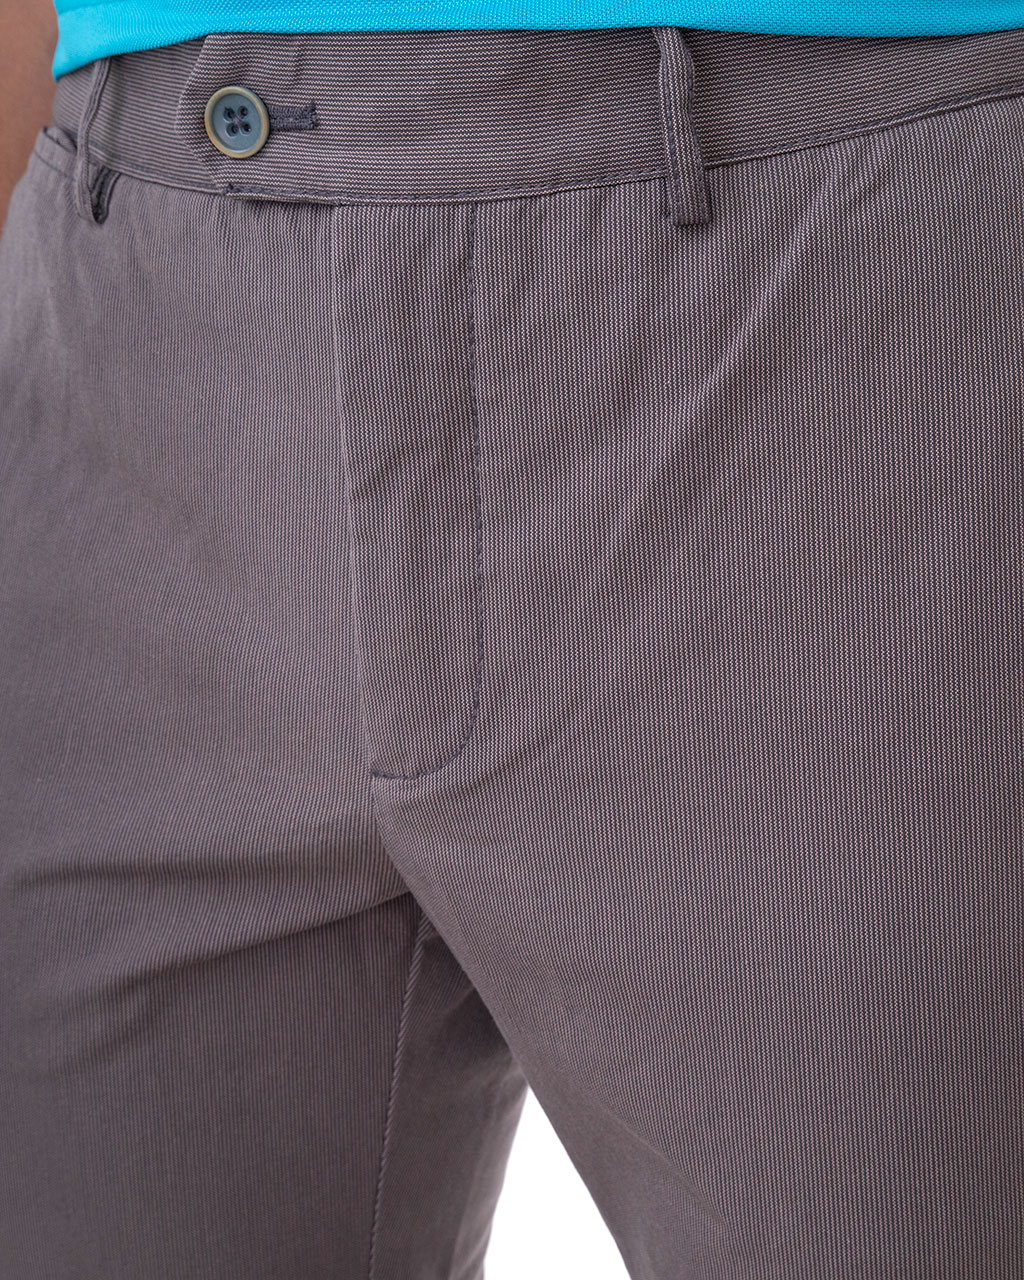 Men's trousers 140501130                (3)